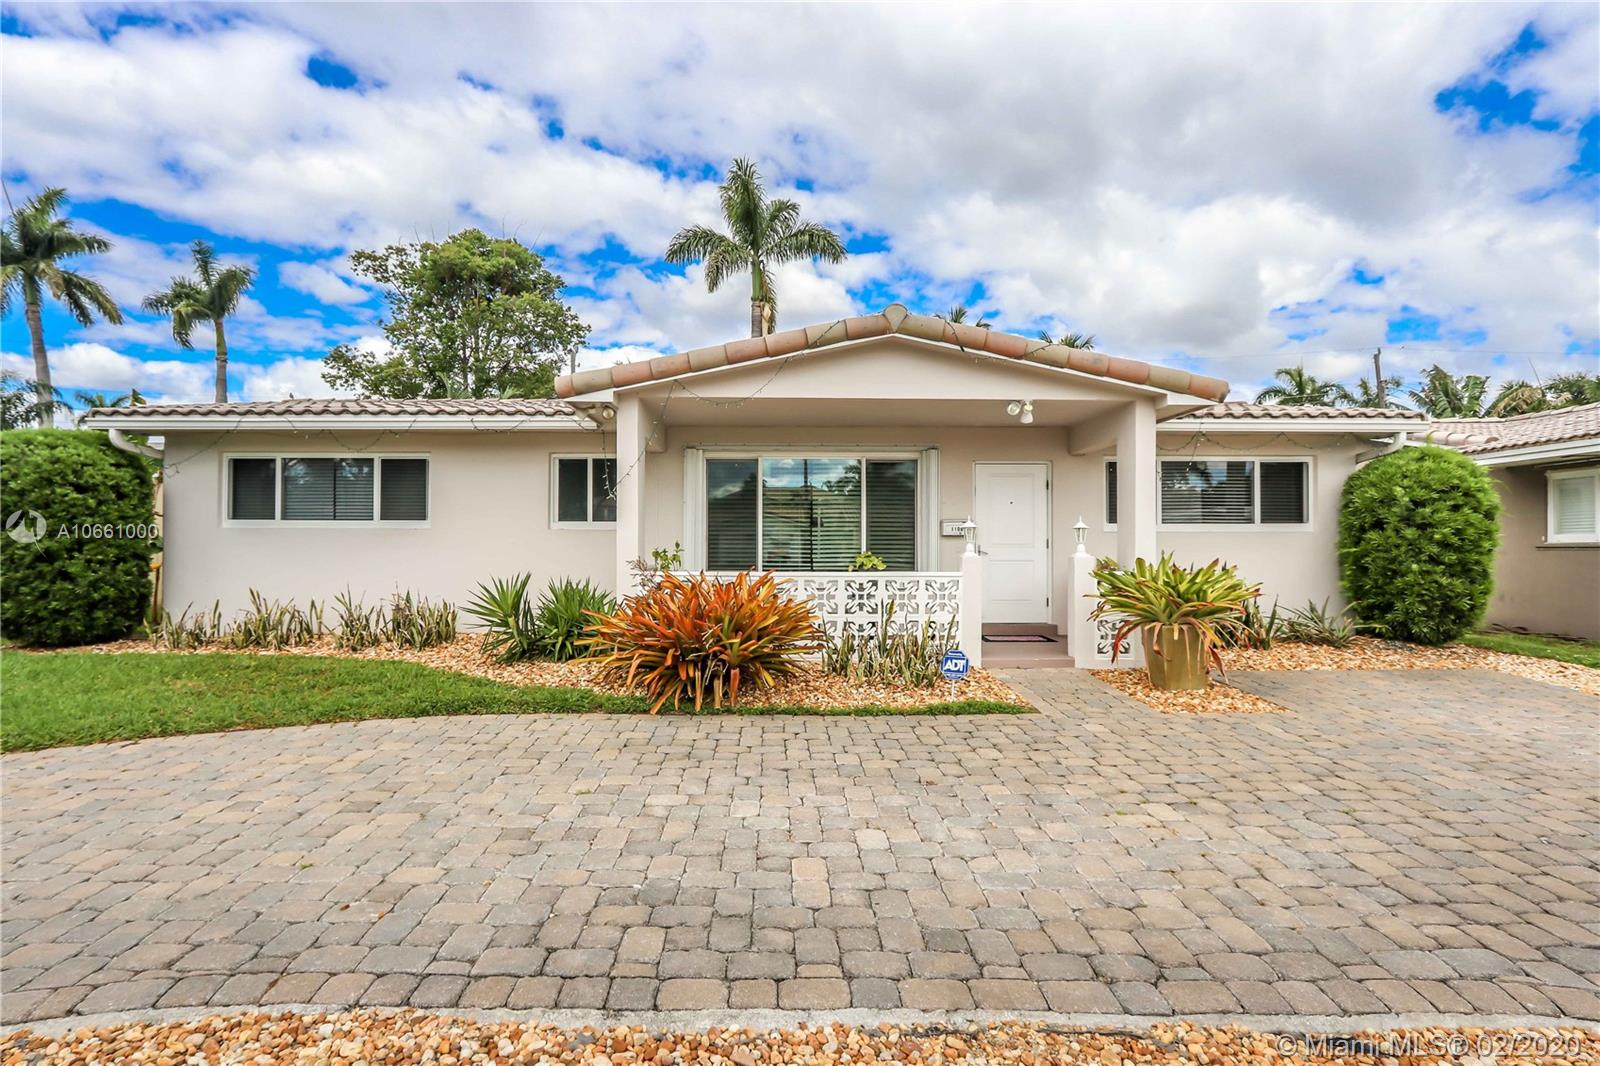 1106 N 13th Ave  For Sale A10661000, FL